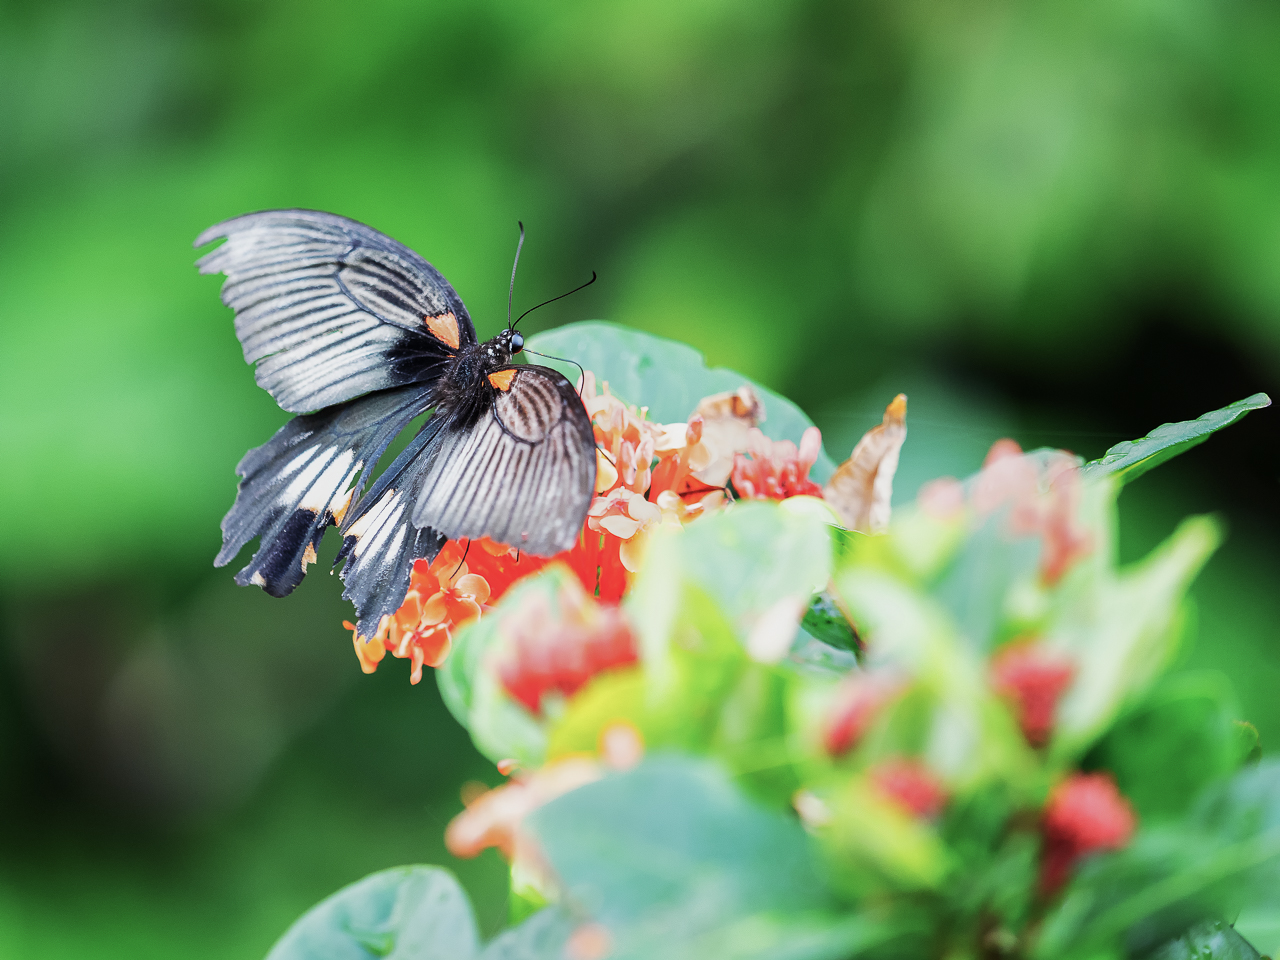 Japan travel photography: A swallowtail butterfly rests on a leaf in Yakushima, Japan.